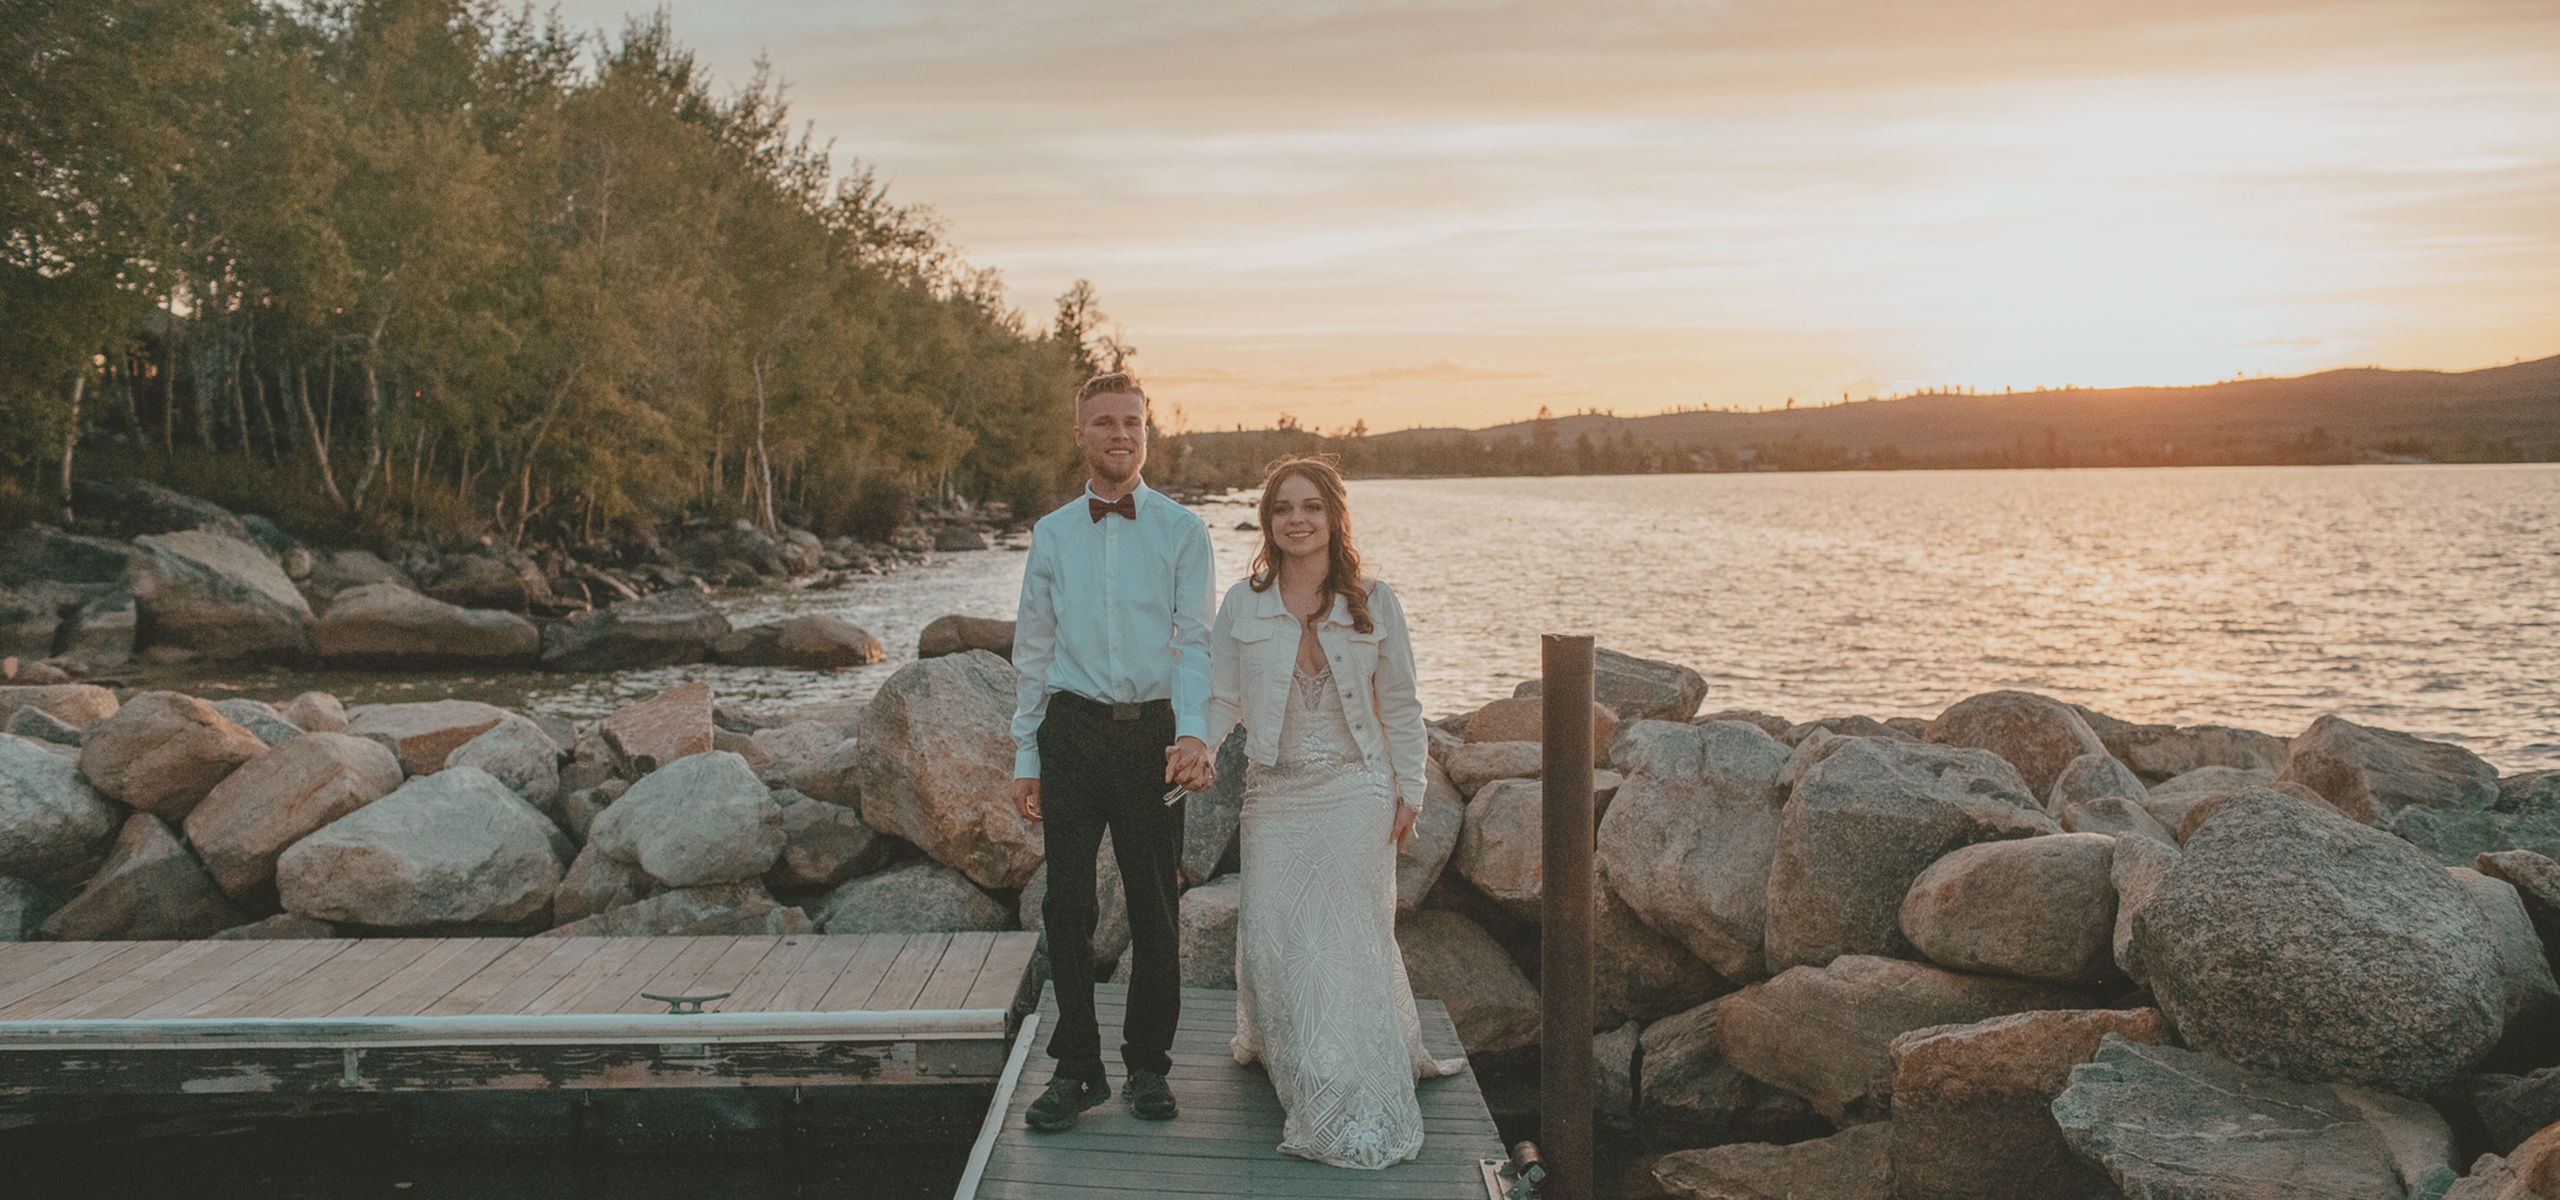 New London Connecticut Wedding Photography + Elopement Photography